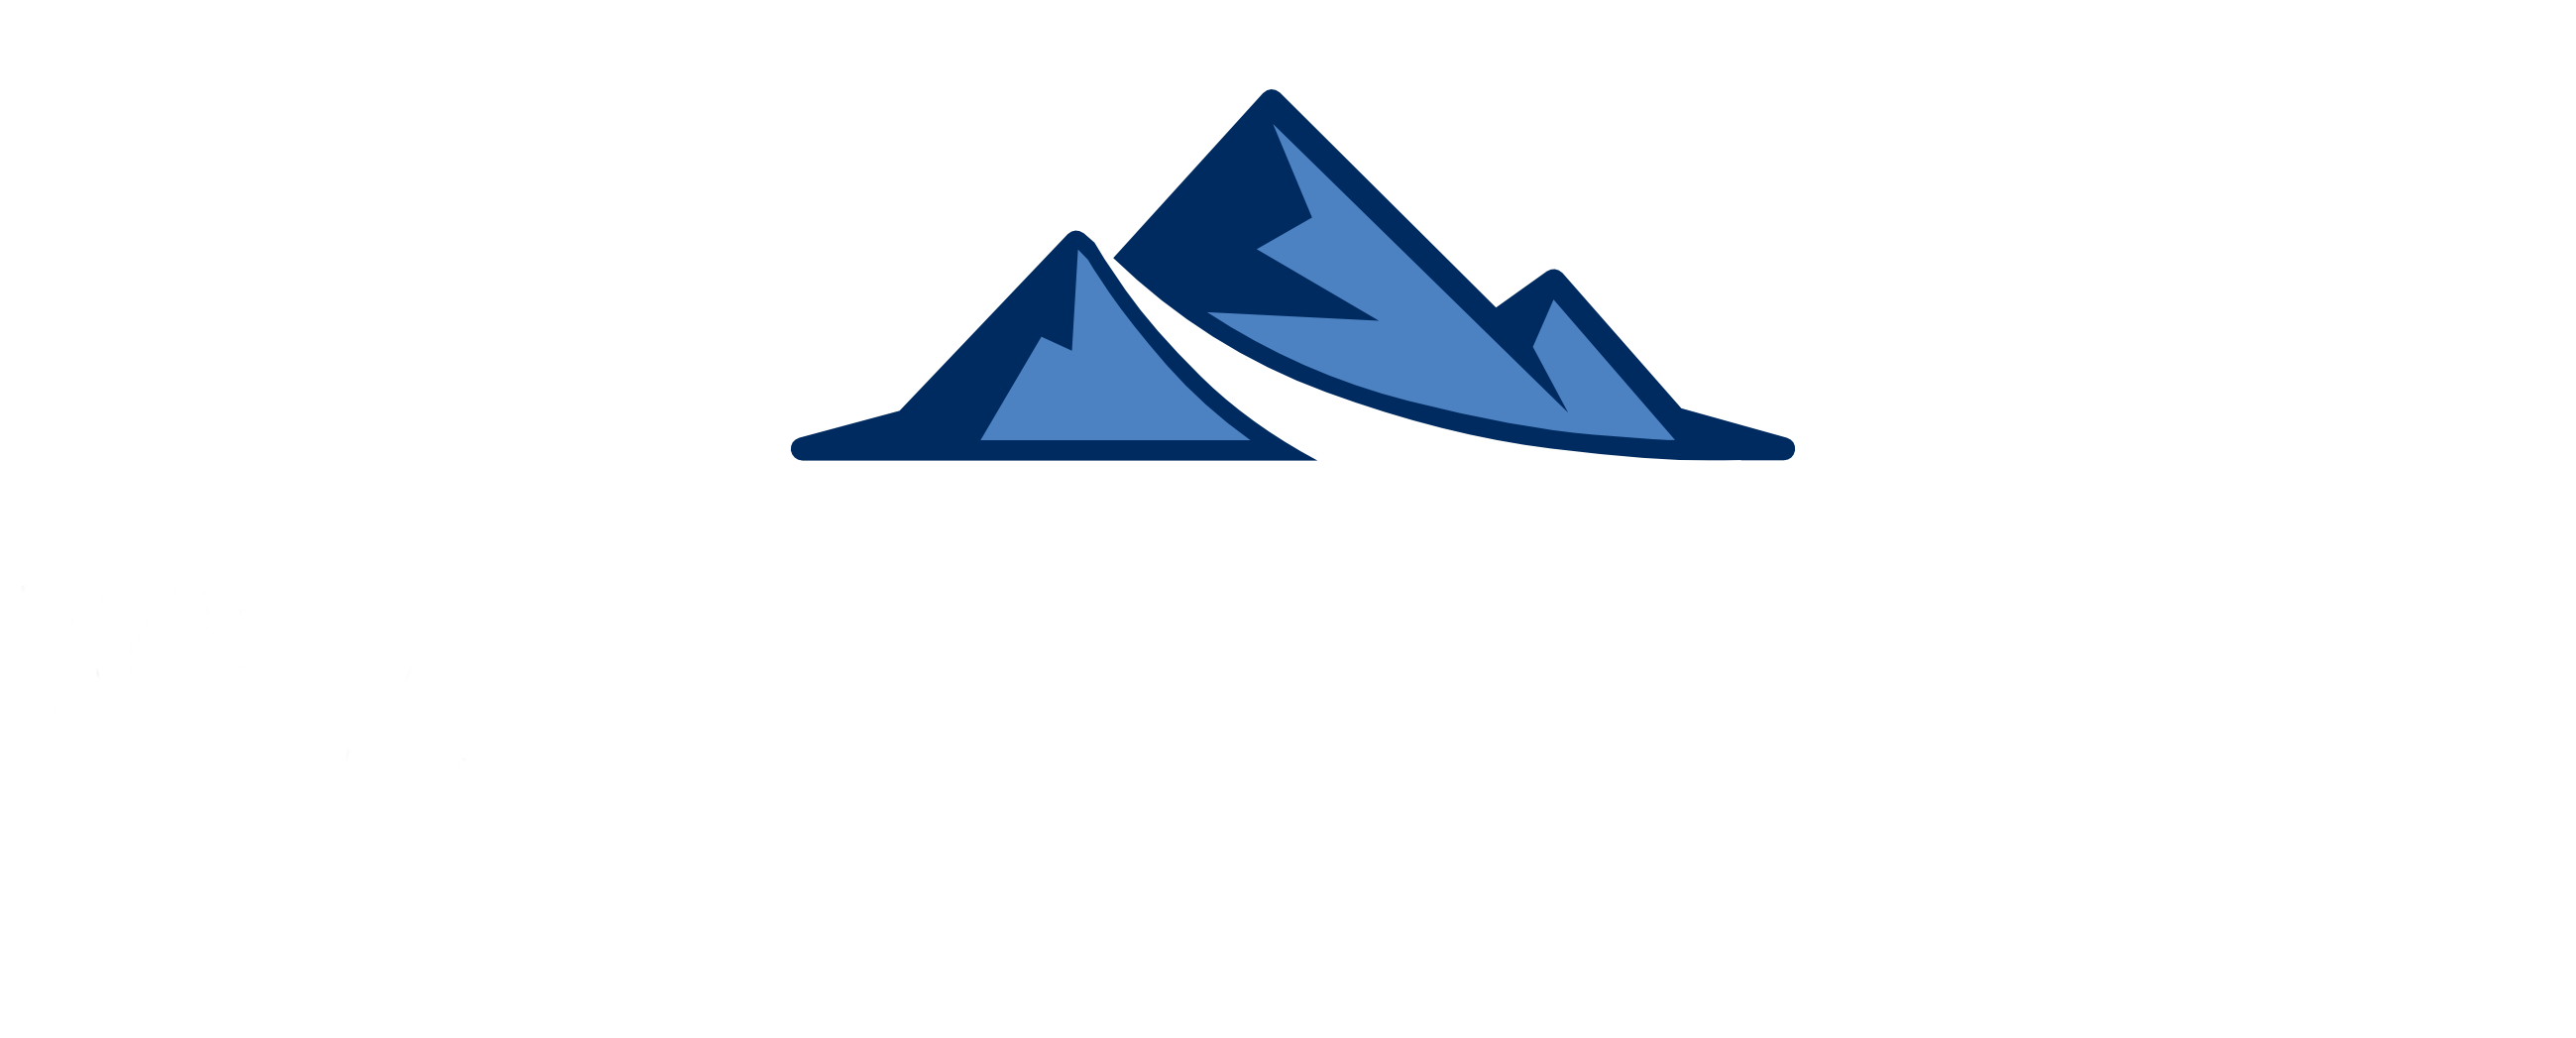 TurismoVasco